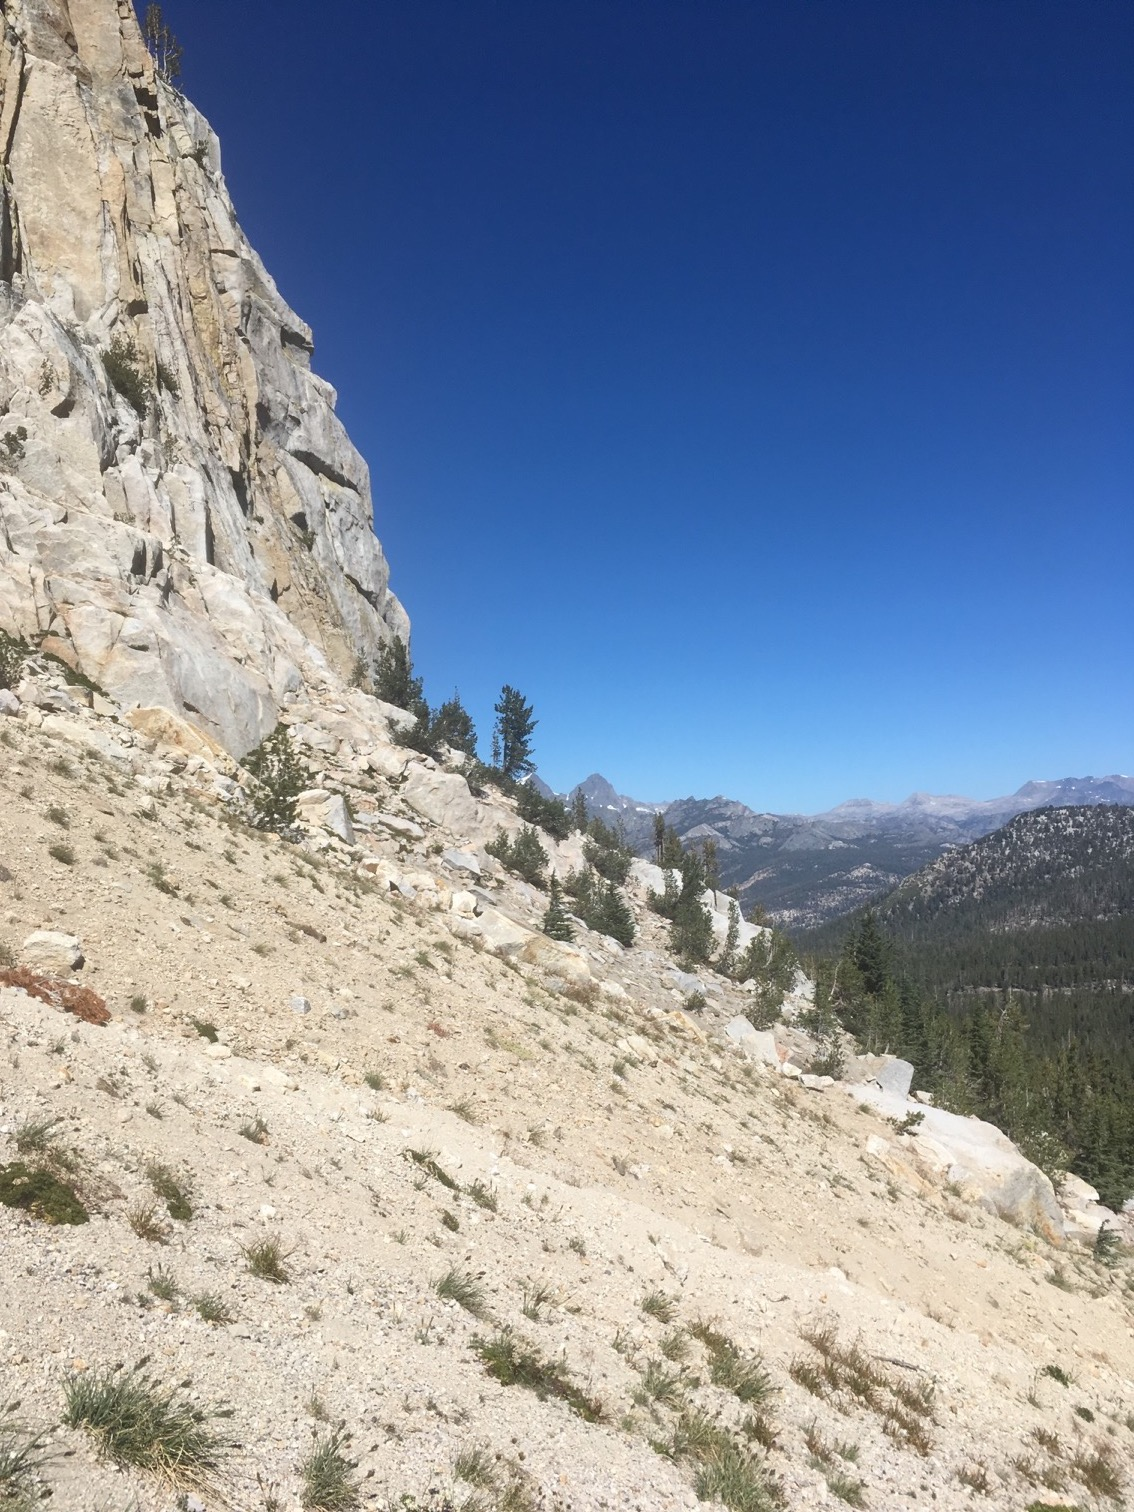 Approaching Mammoth Crest